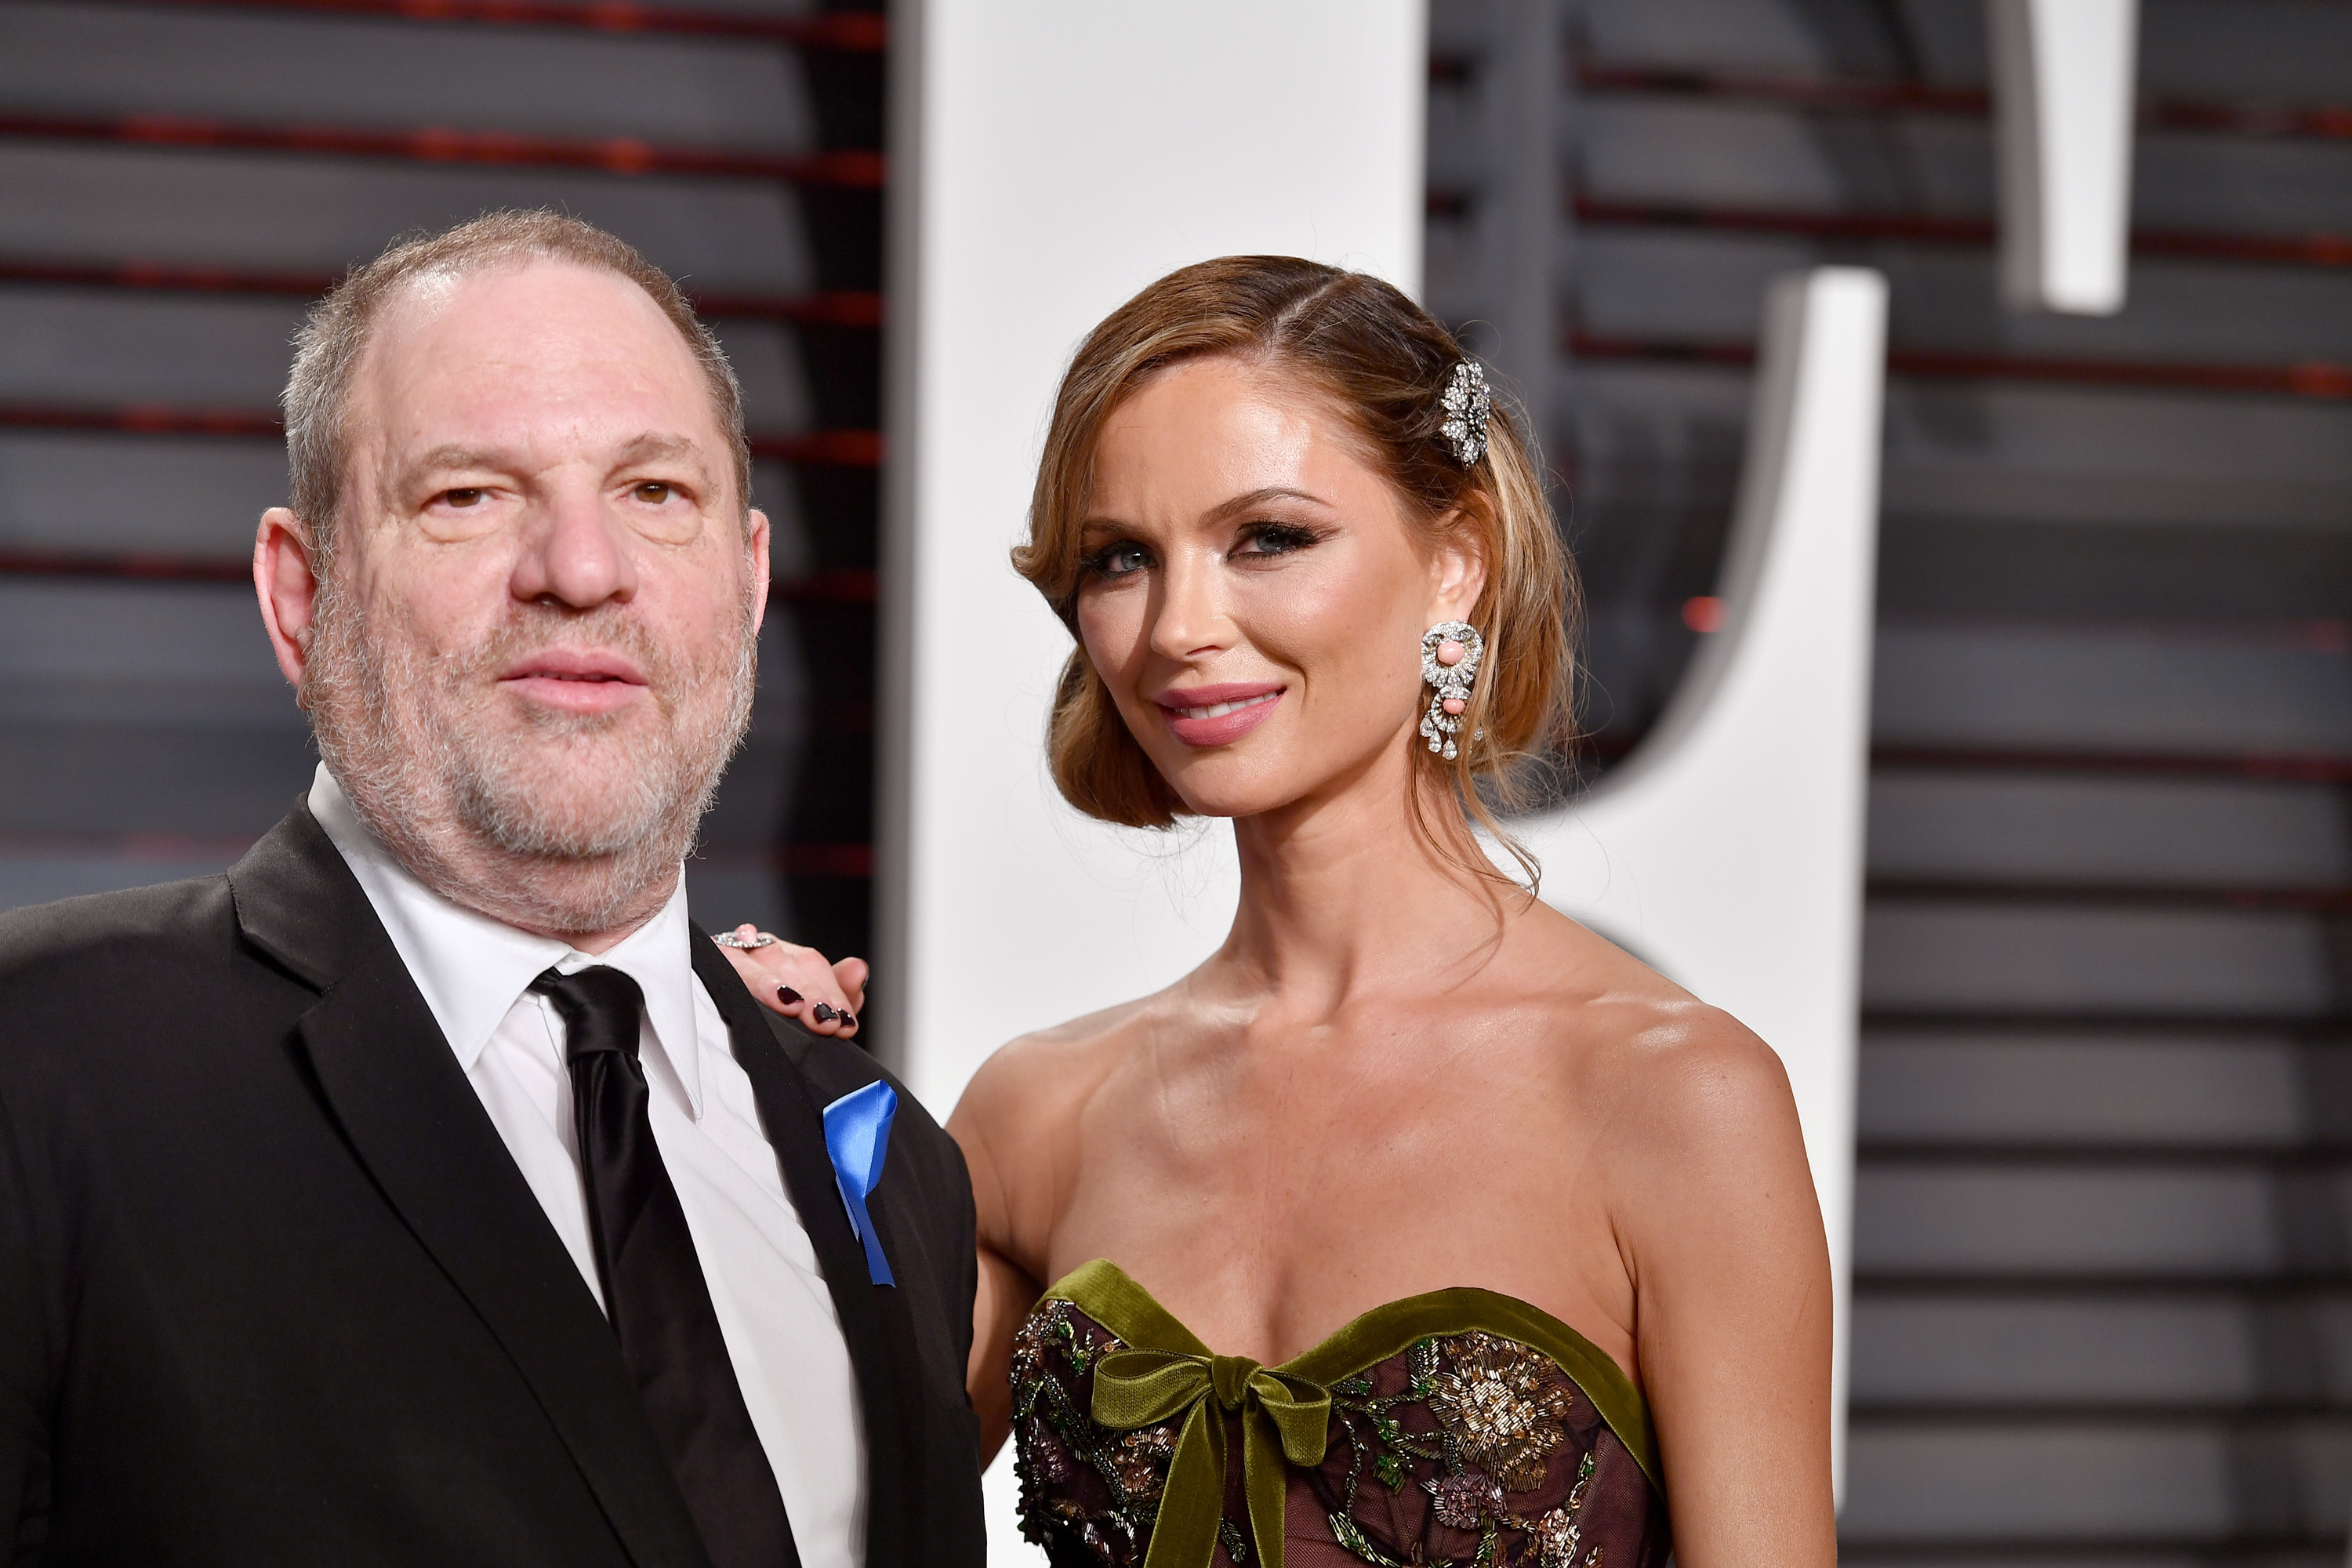 BEVERLY HILLS CA- FEBRUARY 26 Co-Chairman The Weinstein Company Harvey Weinstein and fashion designer Georgina Chapman attend the 2017 Vanity Fair Oscar Party hosted by Graydon Carter at Wallis Annenberg Center for the Performing Arts on February